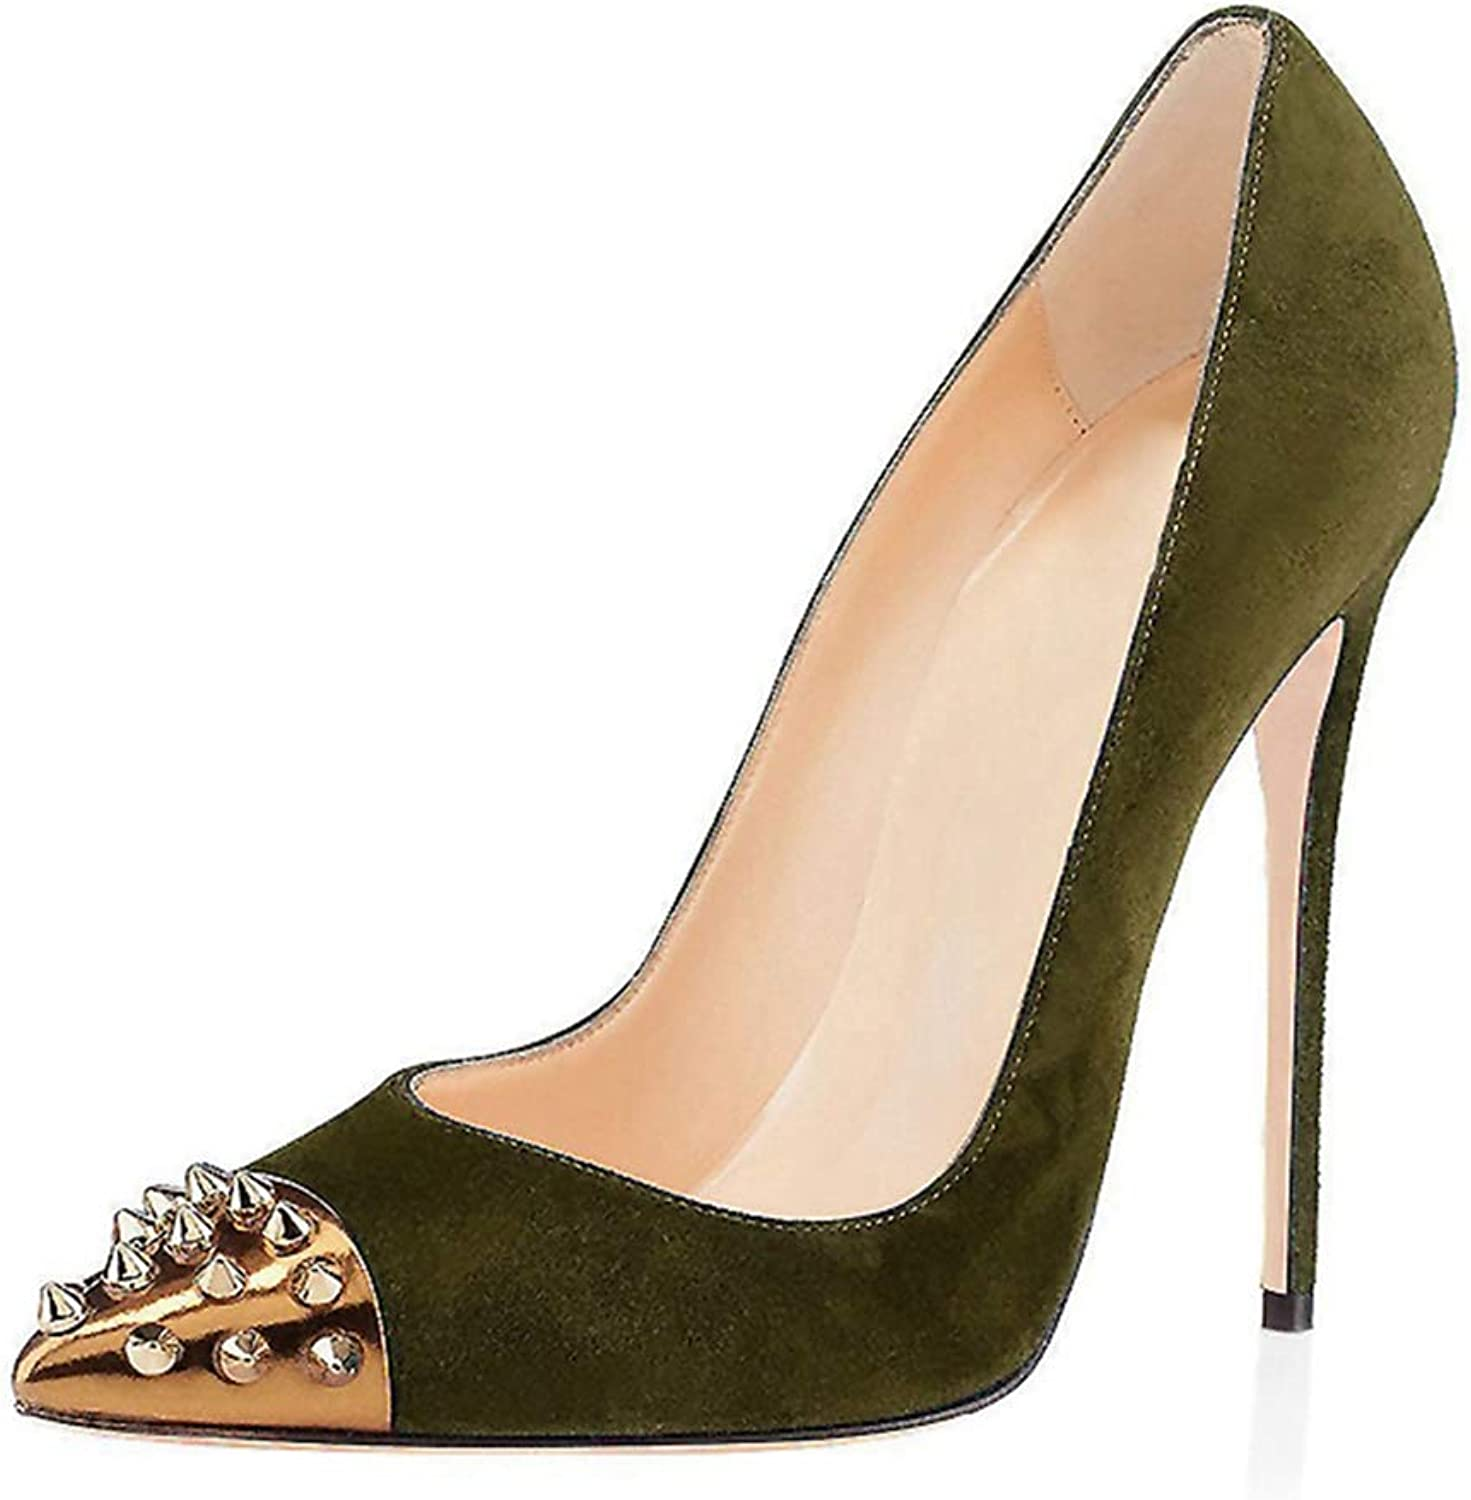 Women shoes Pump gold Rivet Pointed Toe Sandal Ladies Wedding Party Heeled Sandals